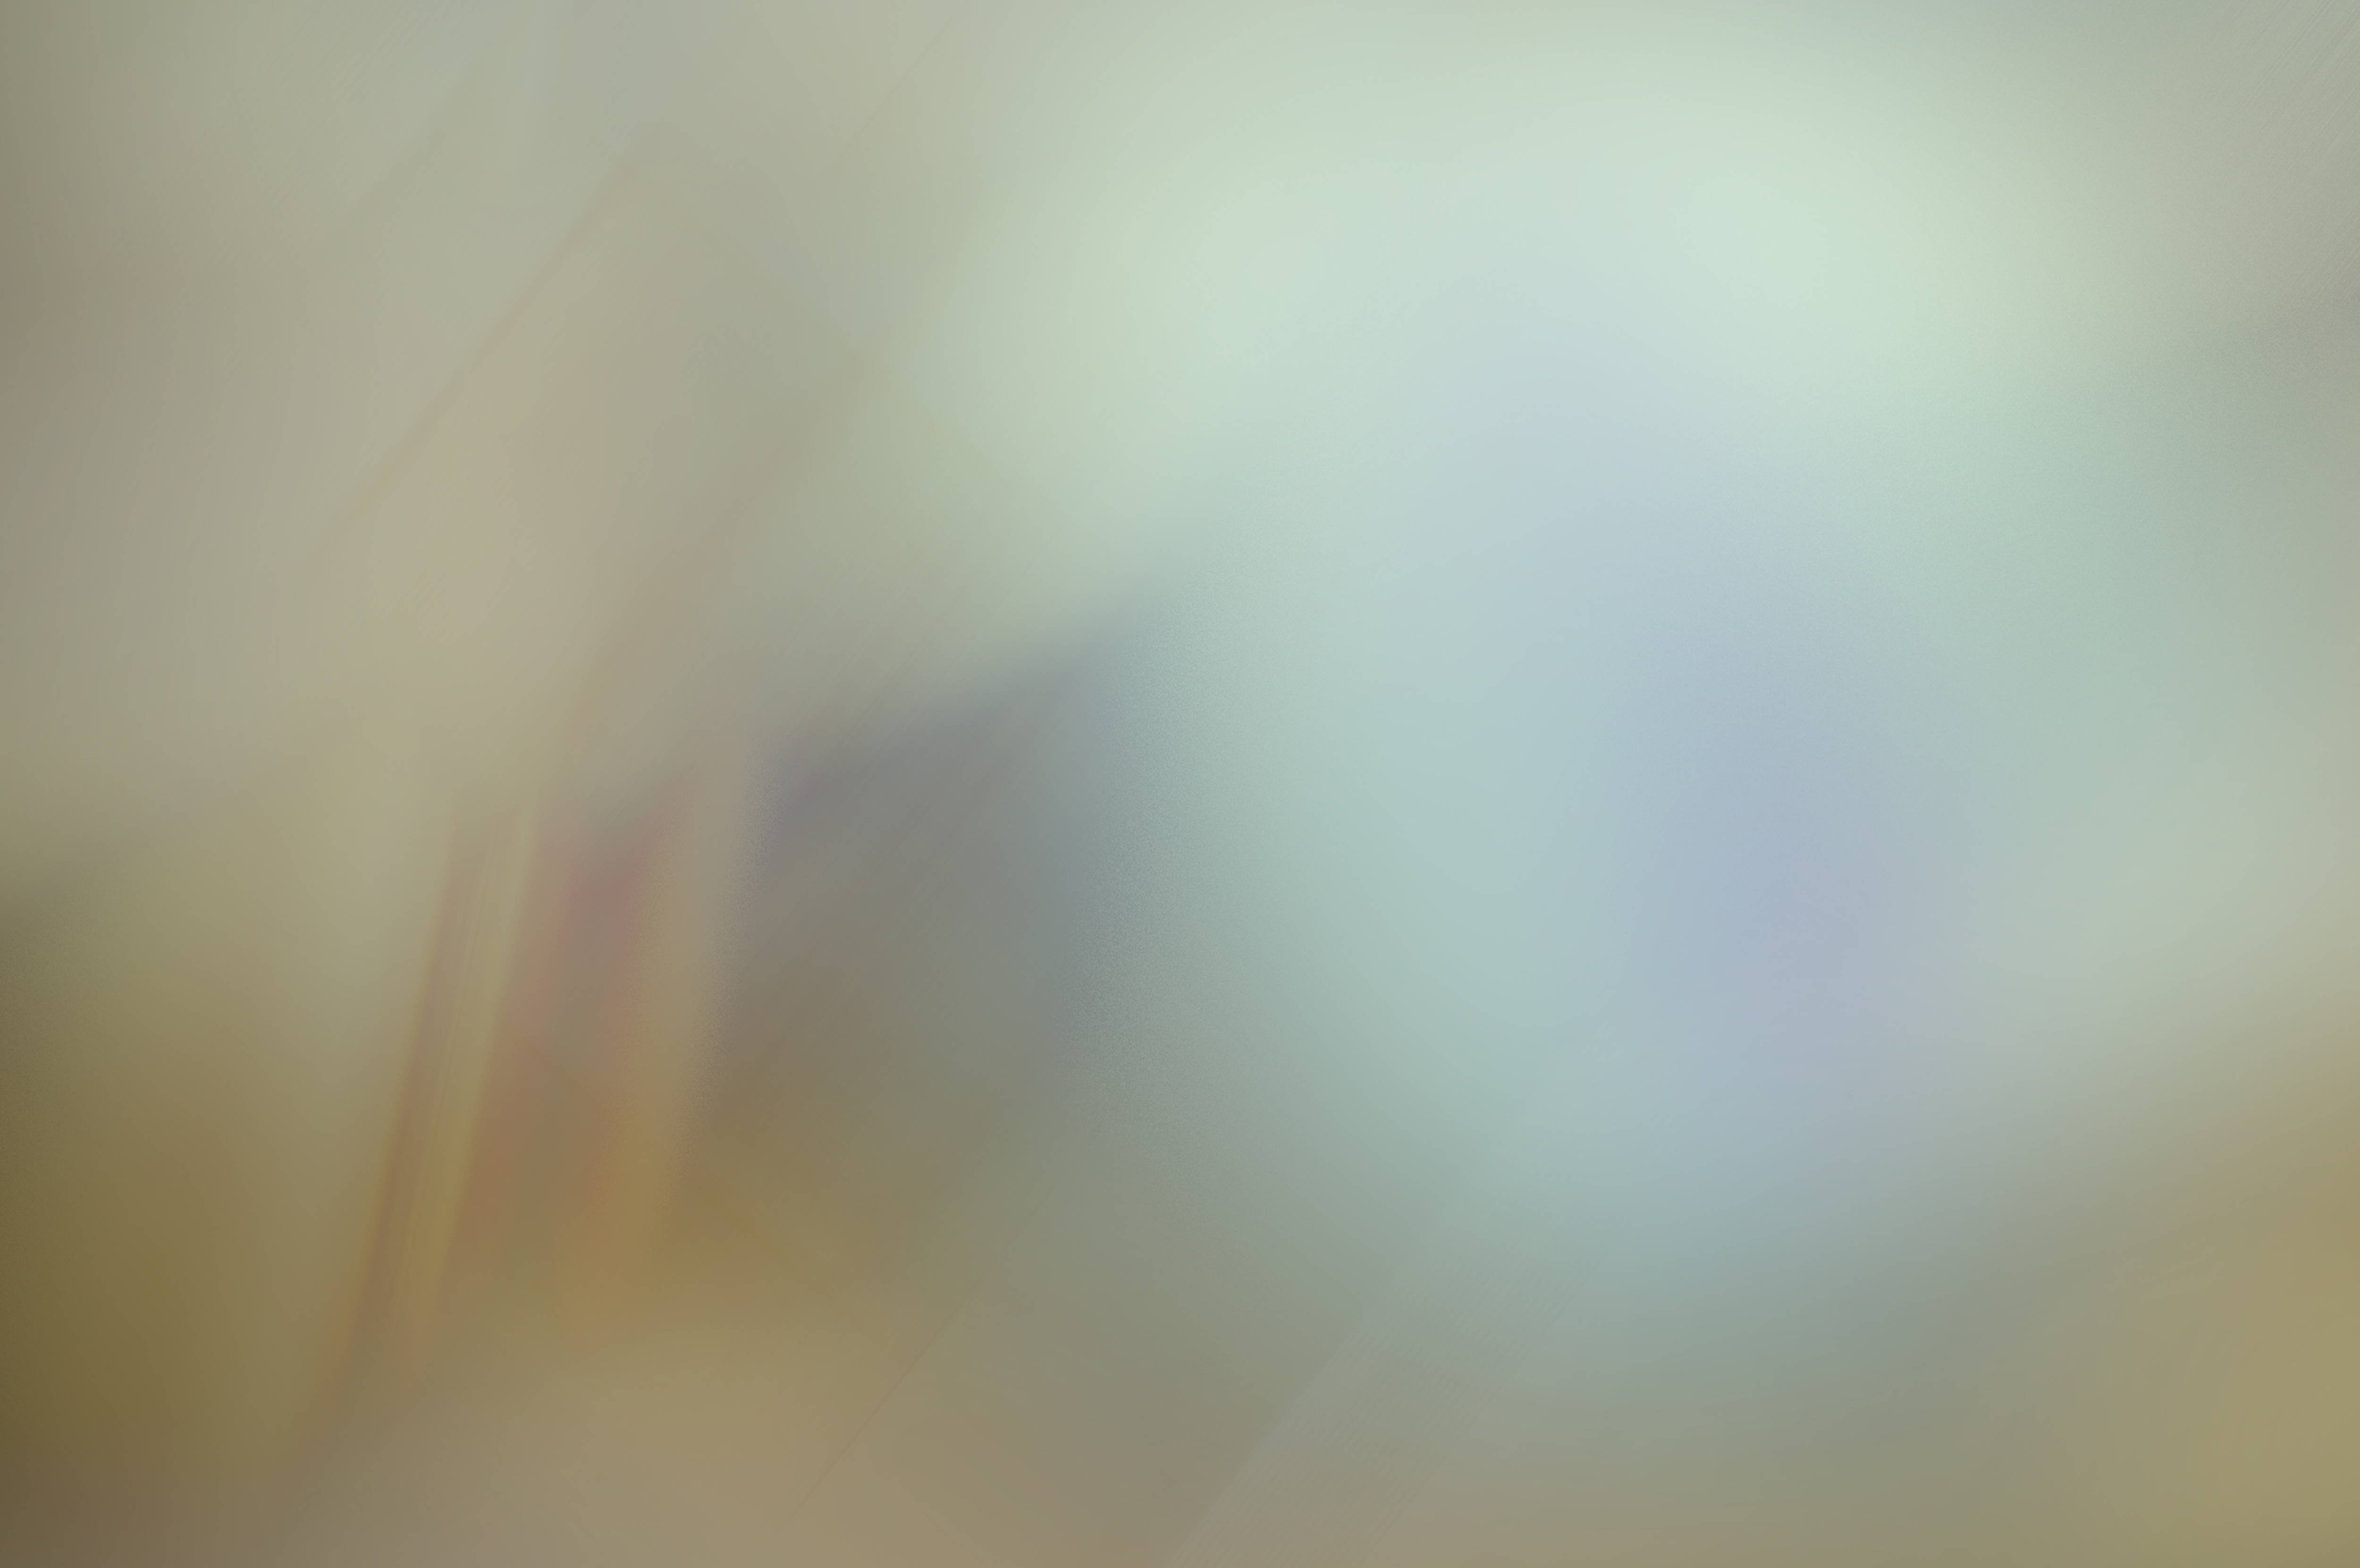 Ethereal Backgrounds example image 16